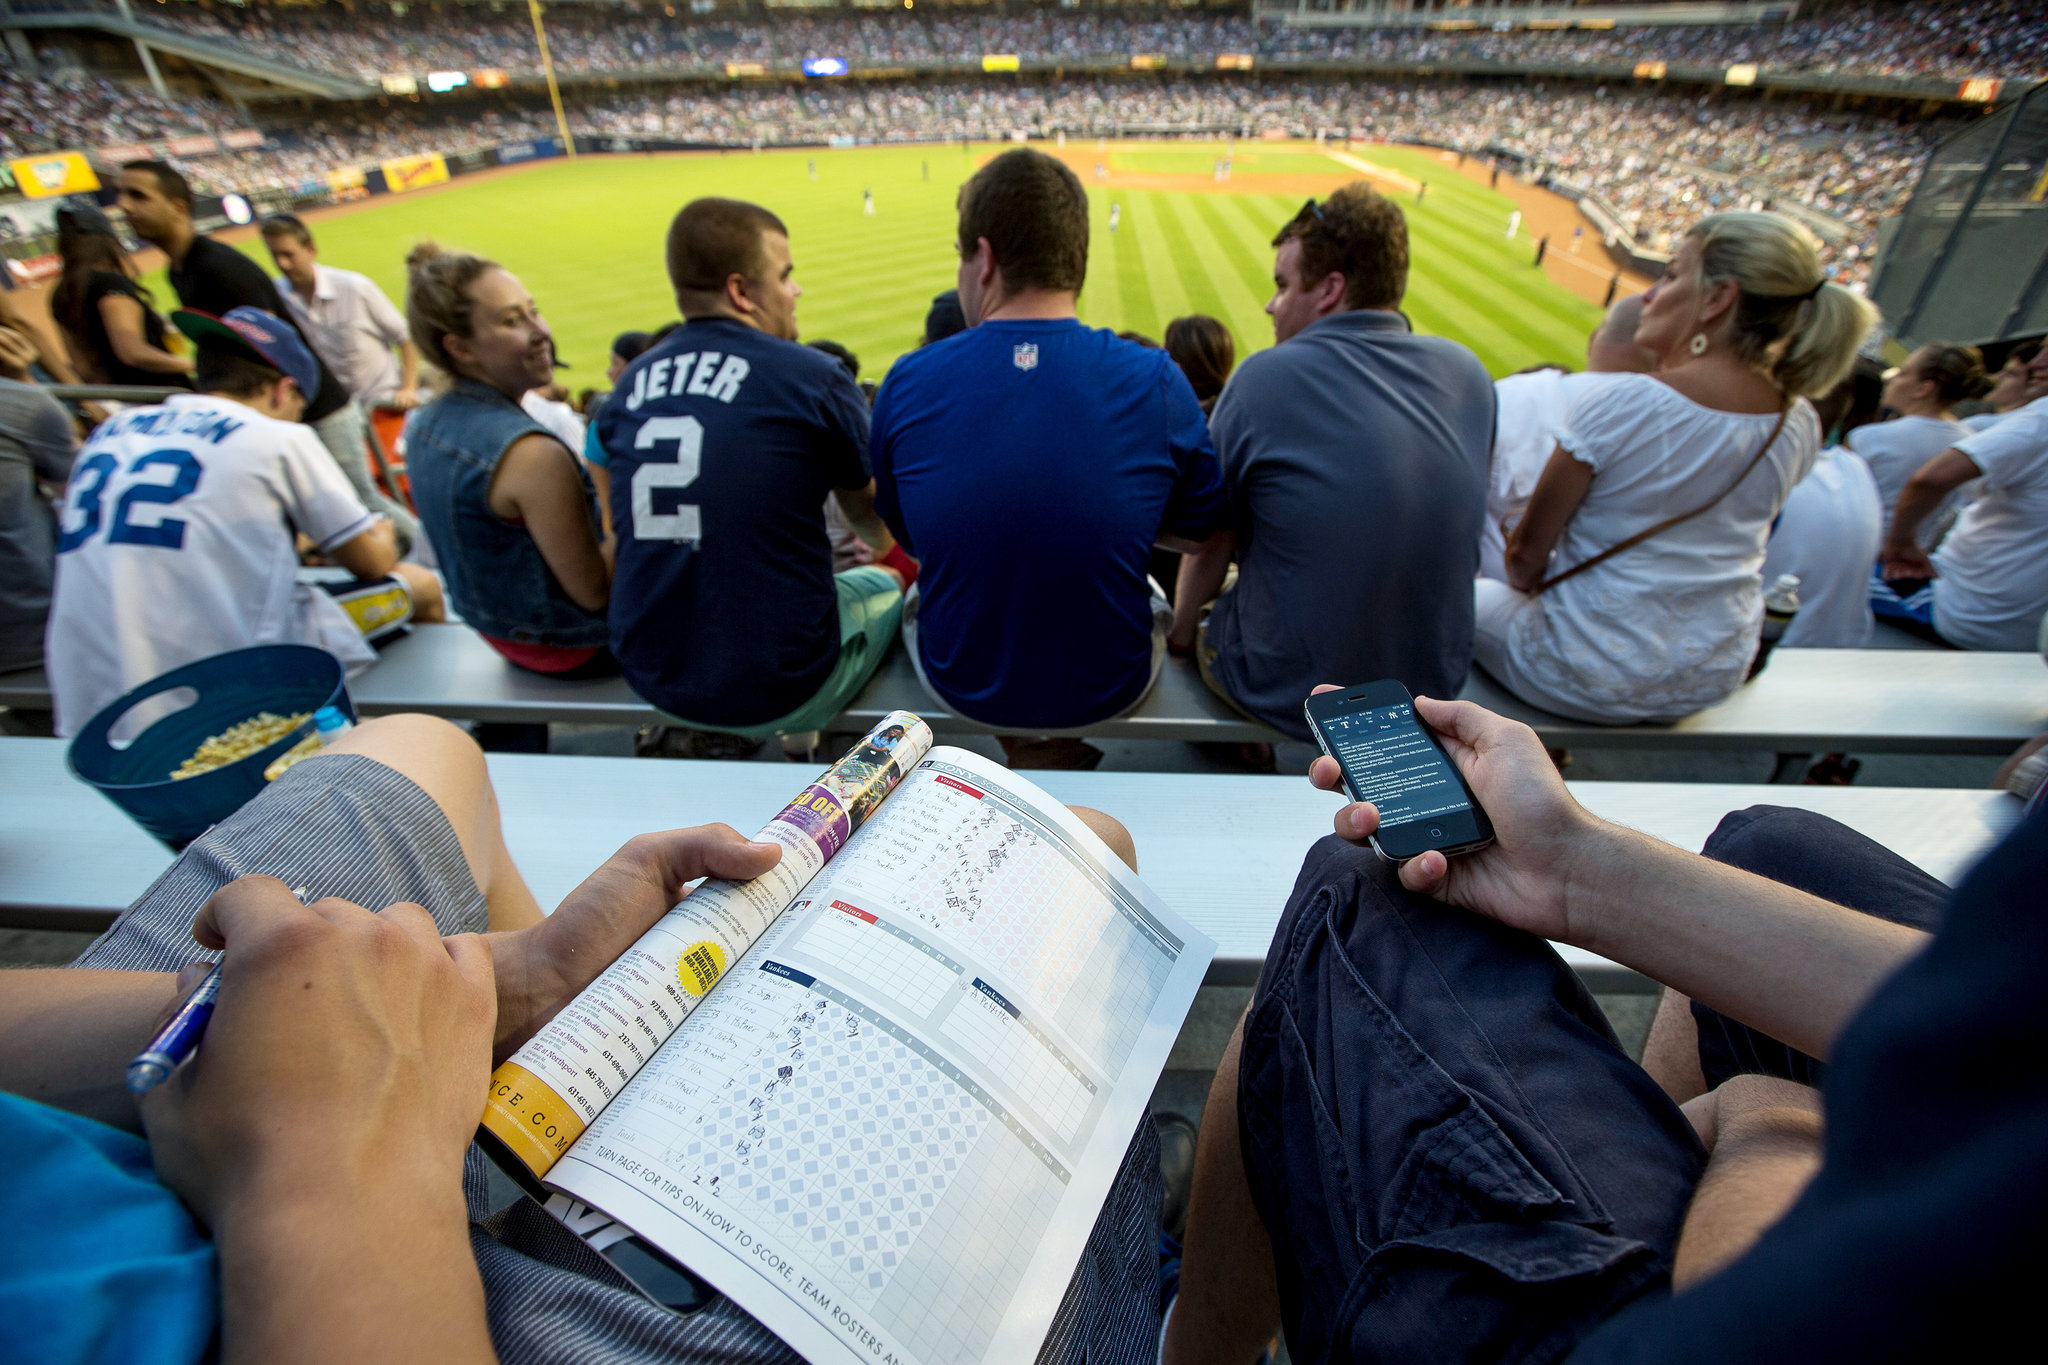 How to understand baseball stats in a game